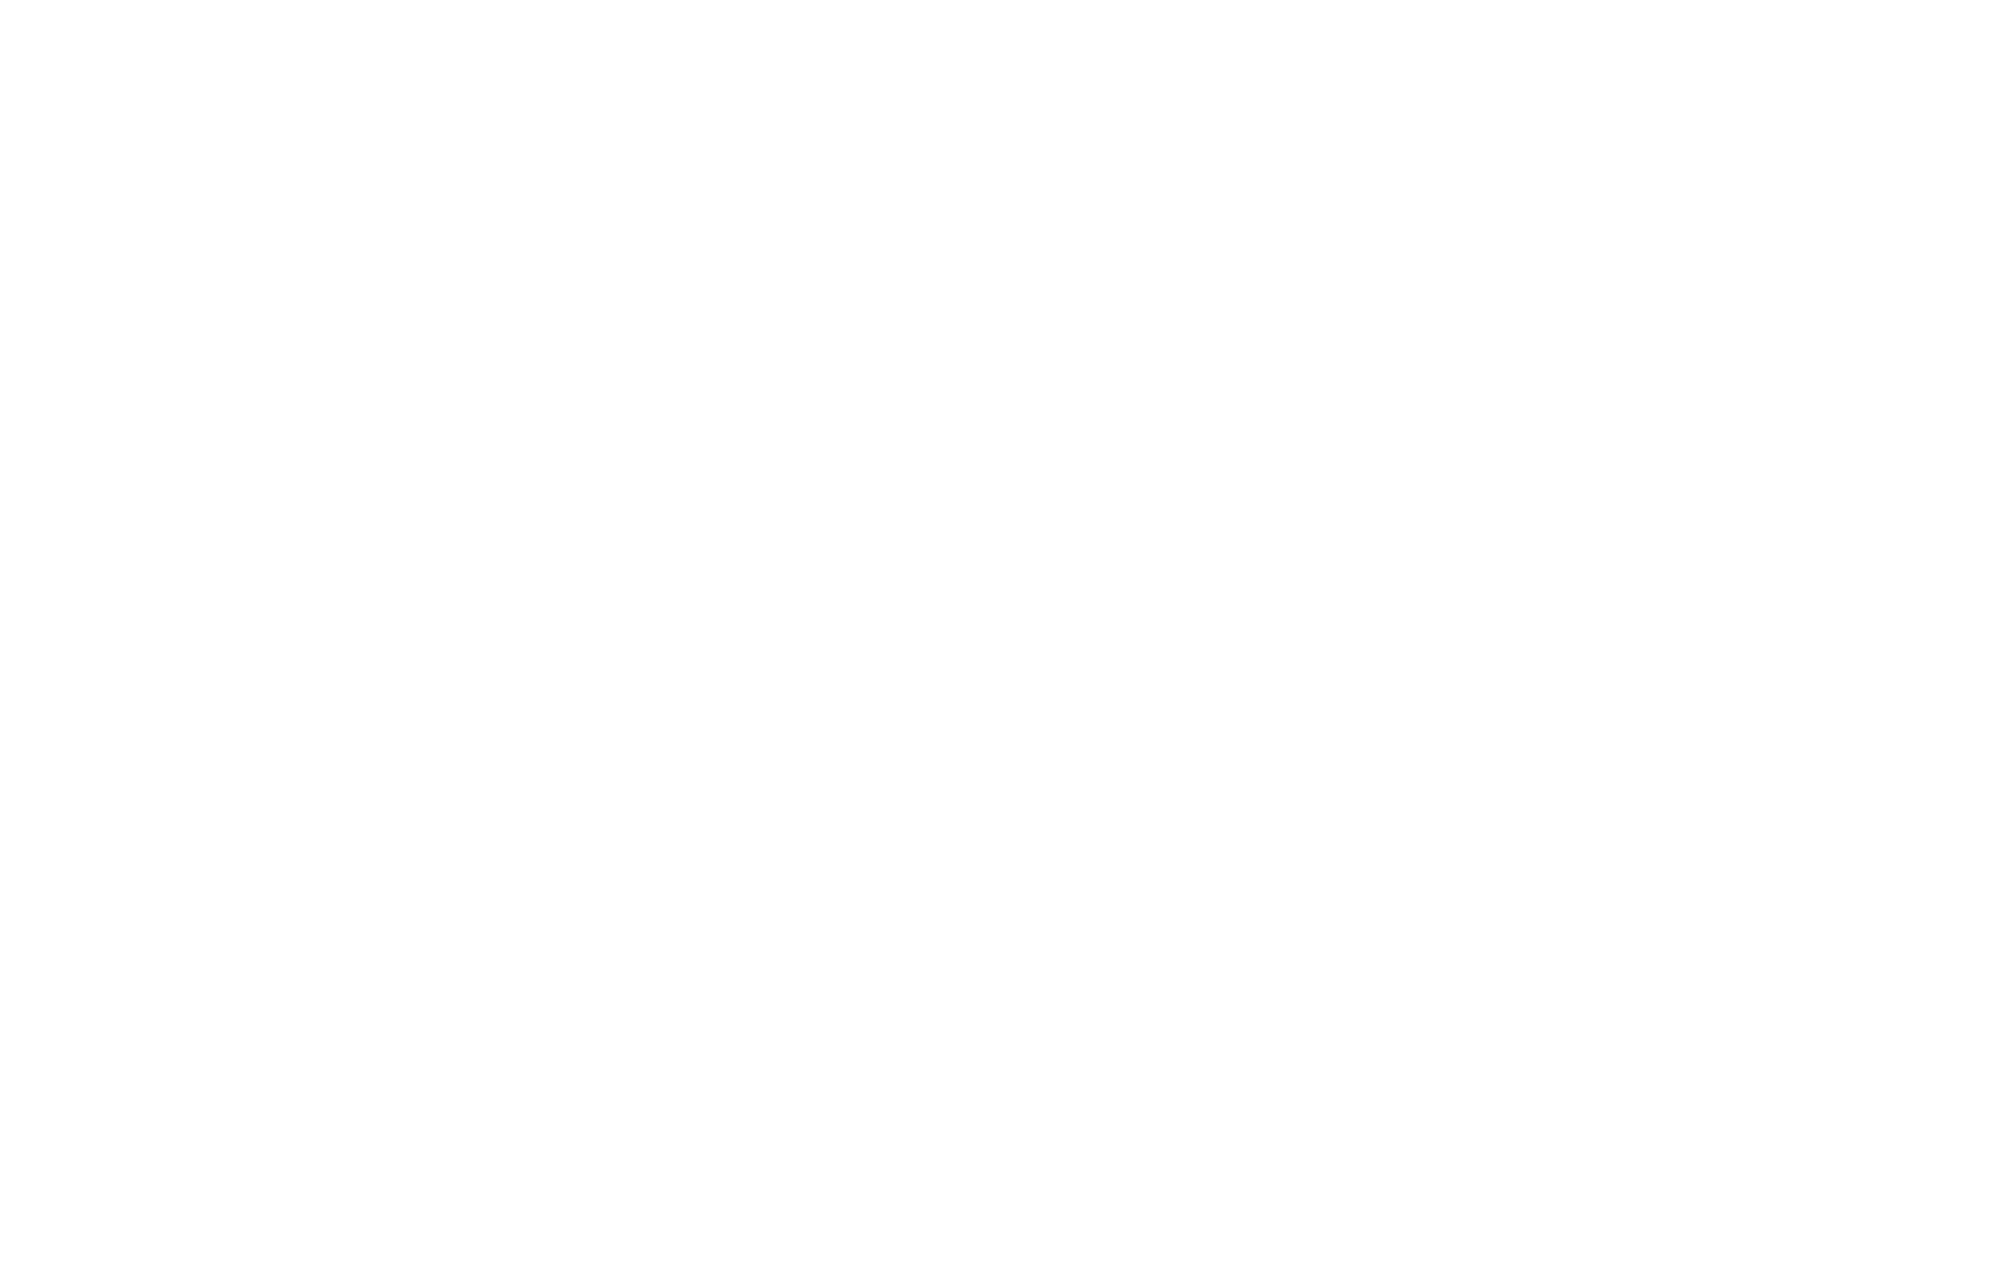 Derby Village Mont Blanc